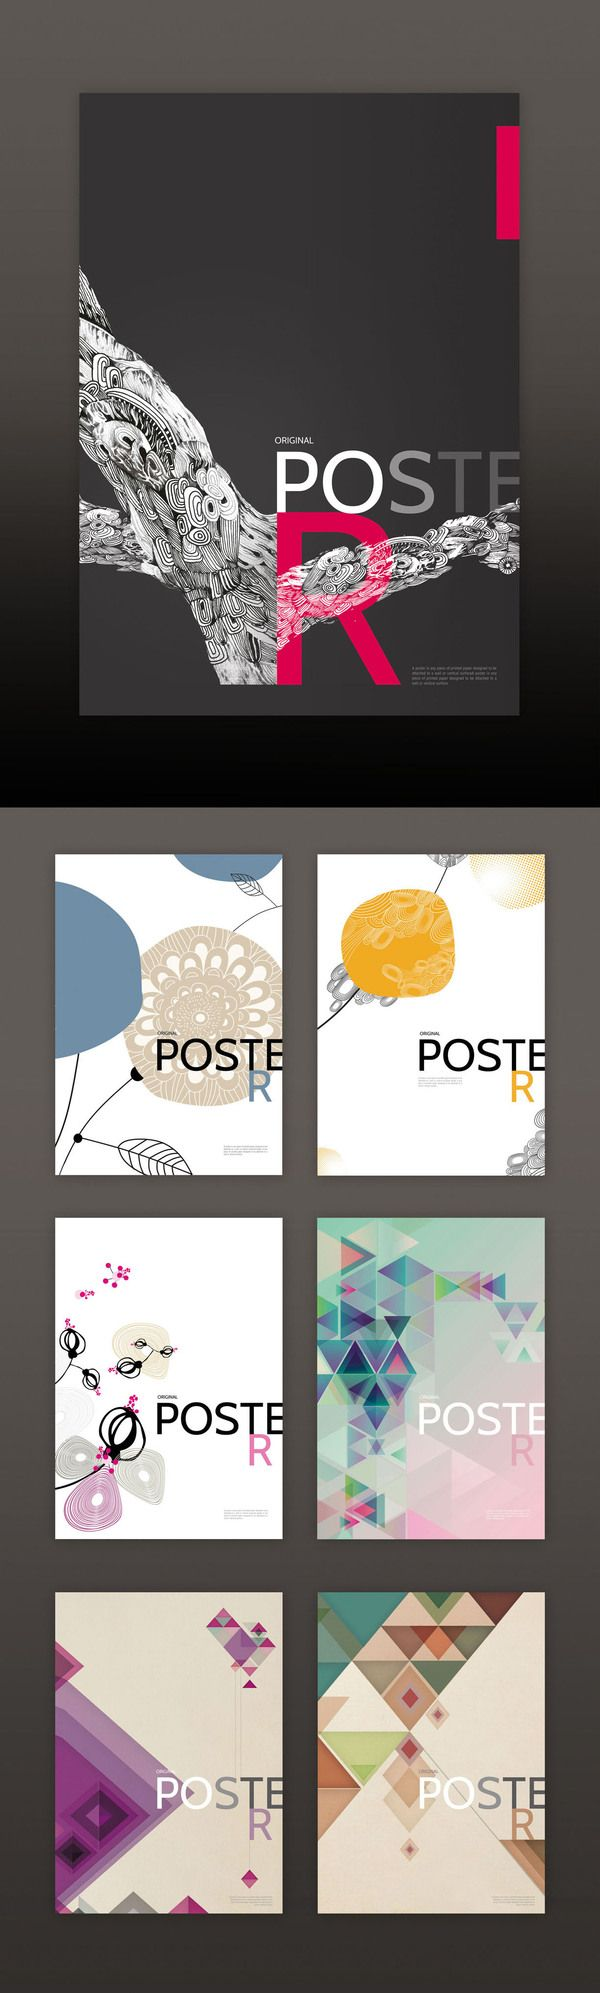 POSTER by jDstyle , via Behance